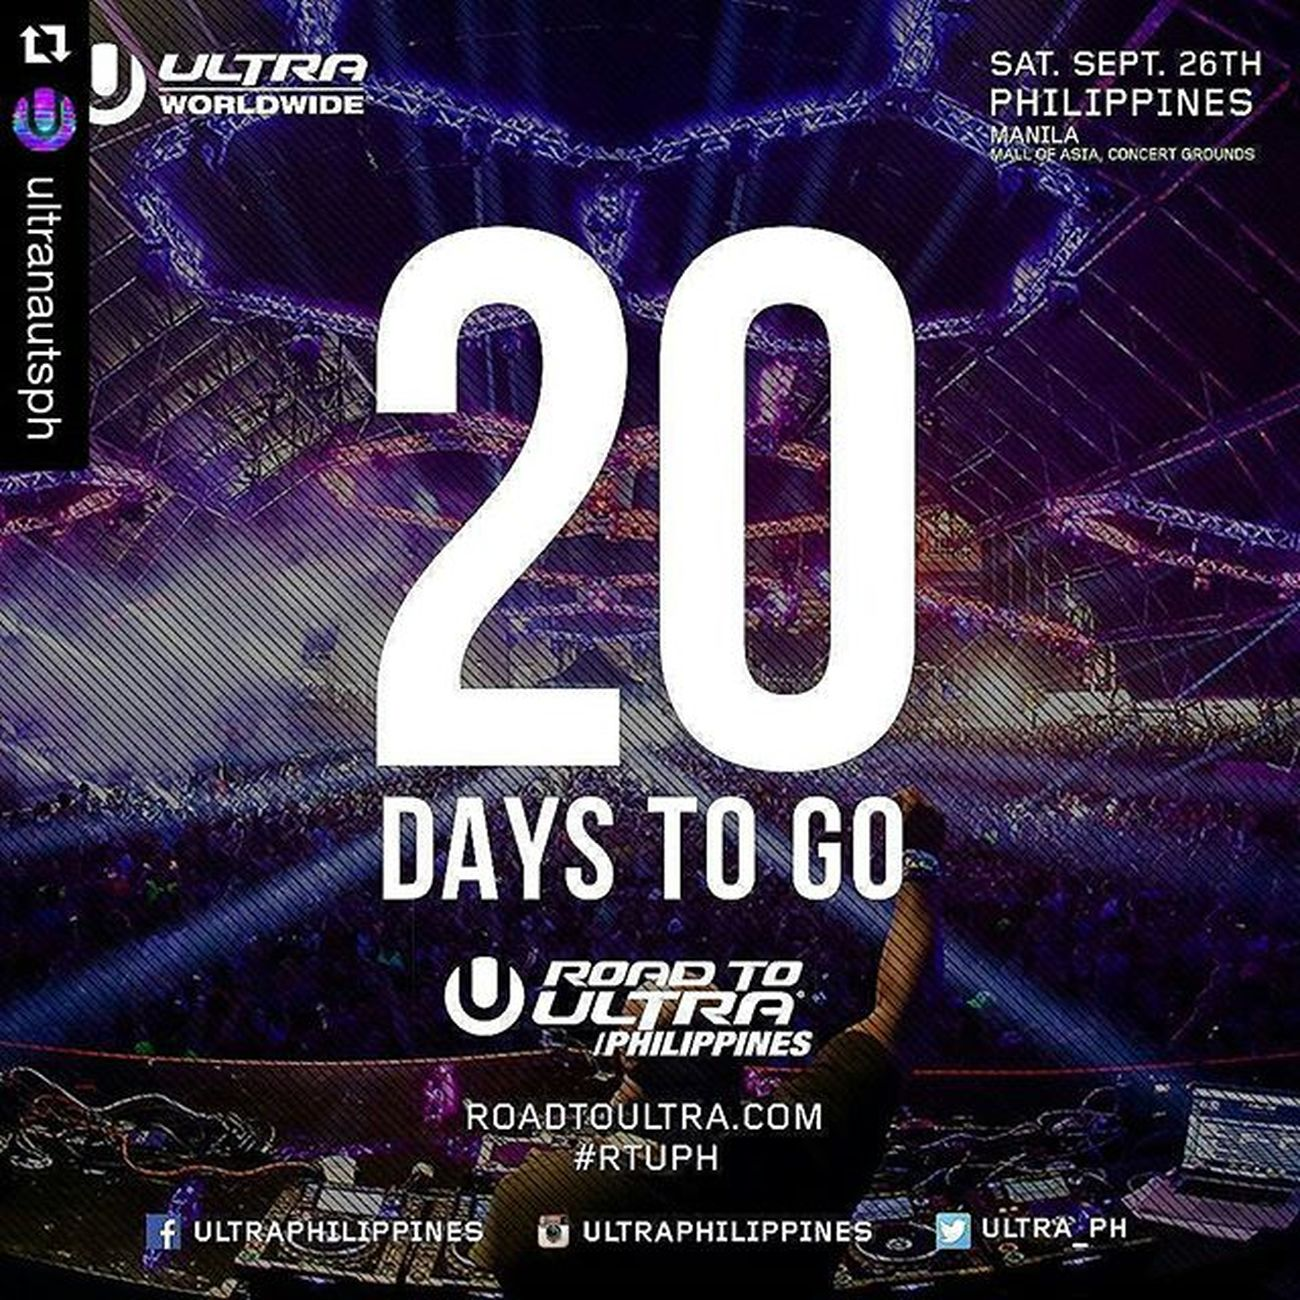 UltraPhilippines Roadtoultraphilippines2015 Roadtoultraph Repost @ultranautsph with @repostapp ・・・ And so the countdown begins! 20 days to go until Road to Ultra Philippines at Mall of Asia Concert Grounds. Get your tickets now! For table reservation or other inquires contact 09175529556 RTUPH Skrillex  Feddelegrand Wegogrand WandW Atrak Vicetone Mija Zedsdead